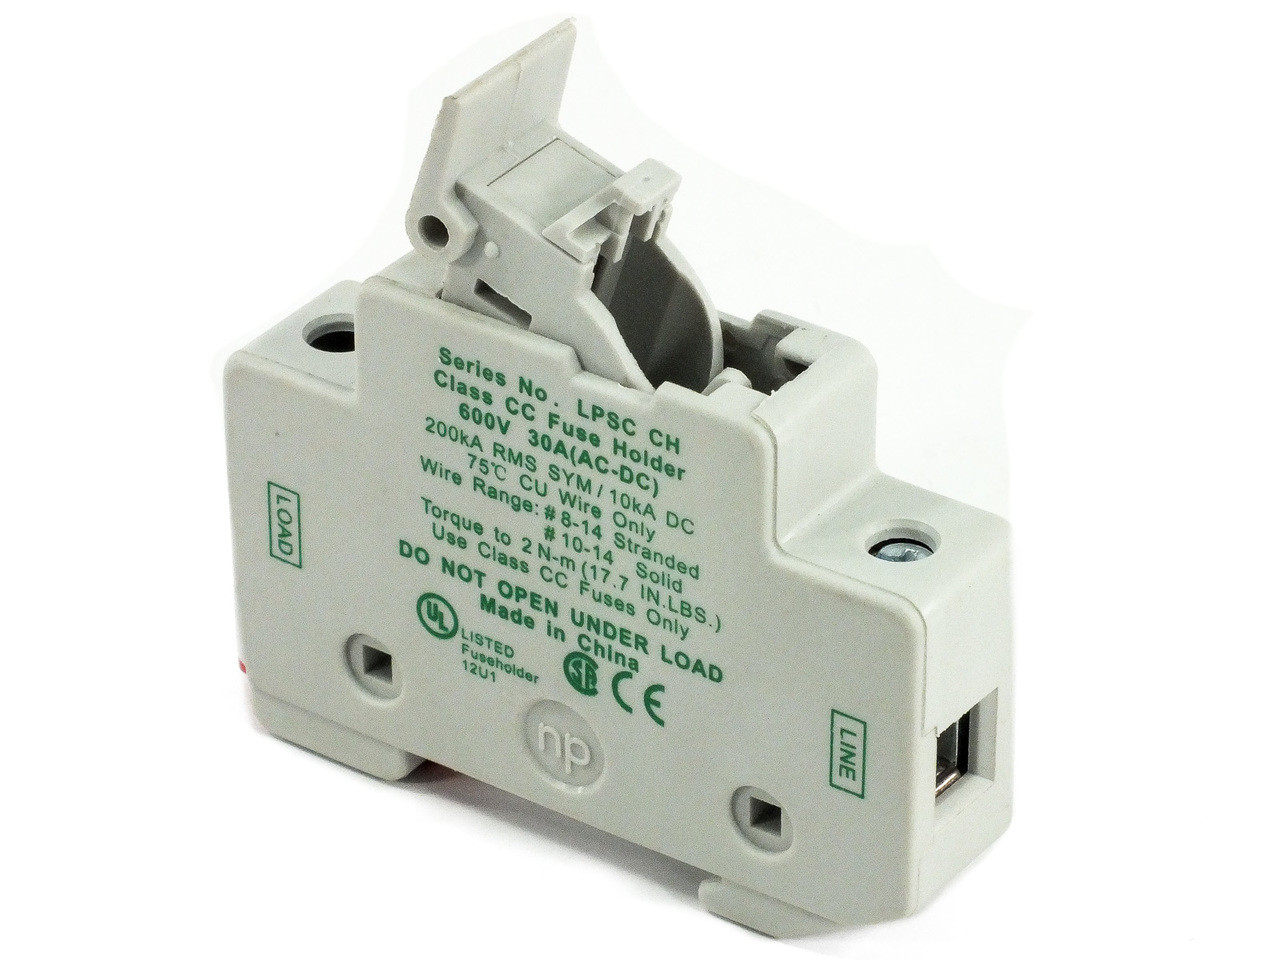 Littelfuse Class Cc Fuse Block Data Wiring Diagrams Box Holder Lpsh Ch Powr Safe 600v 30a Rh Recycledgoods Com Logo